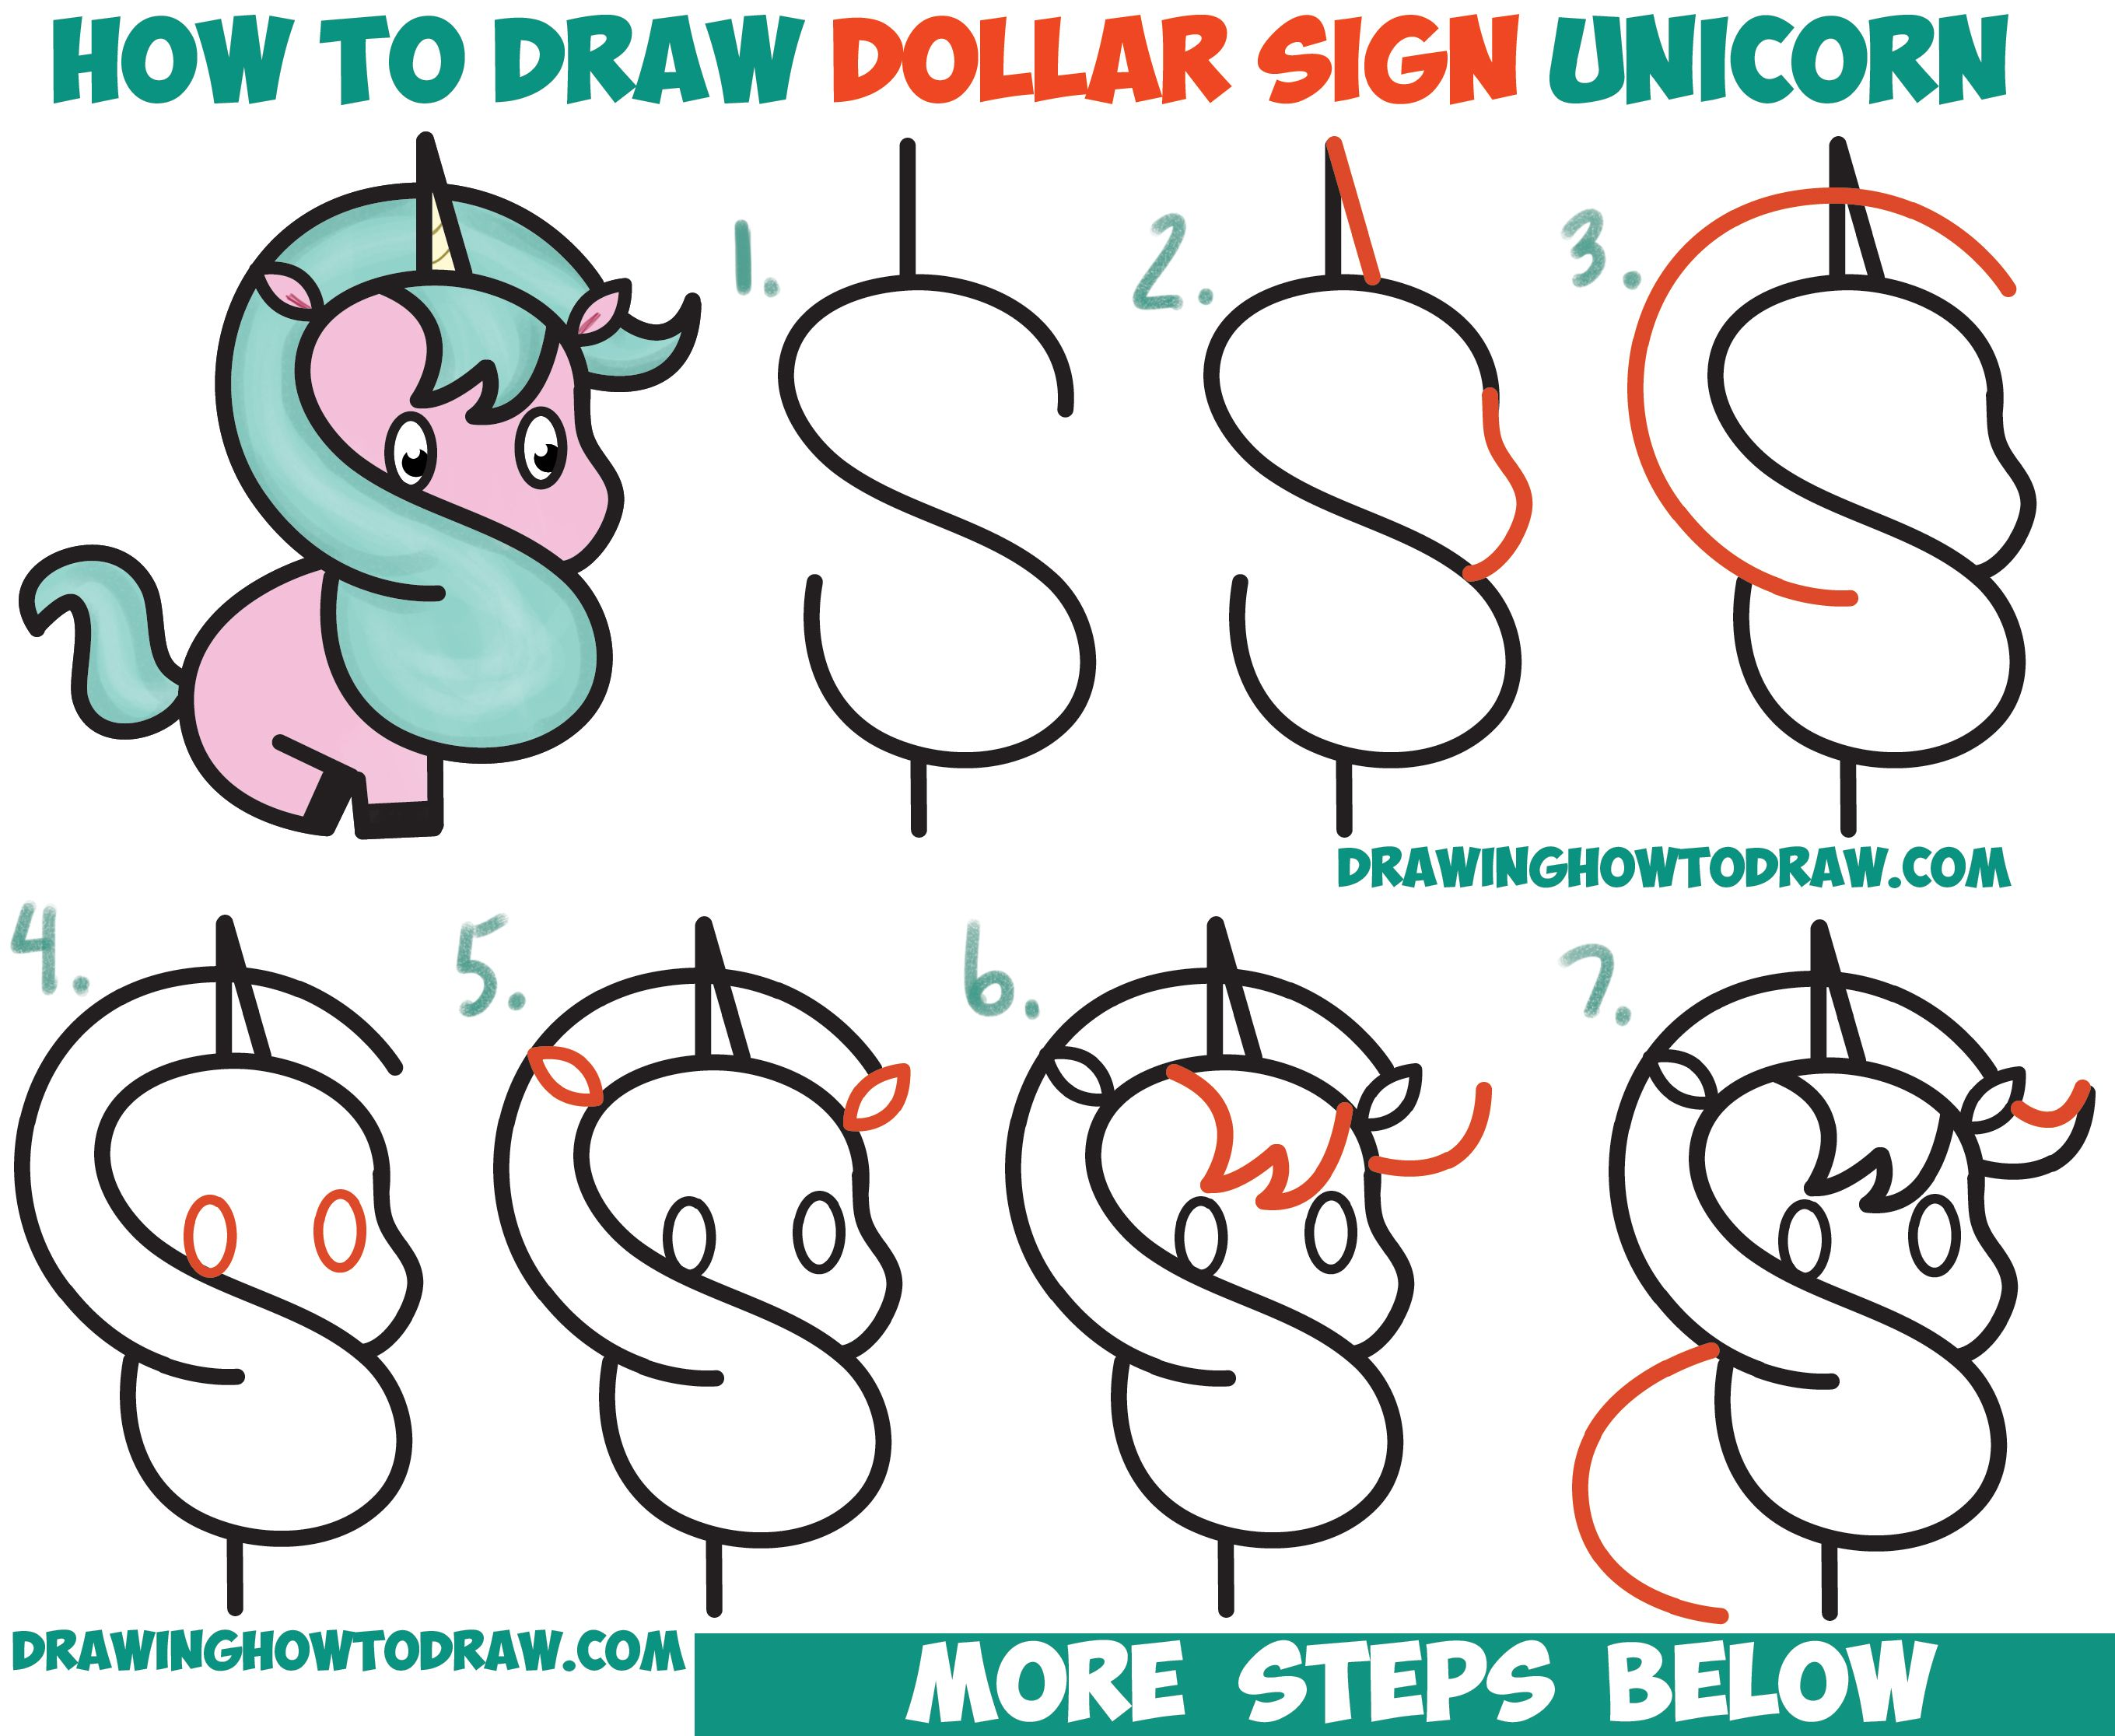 How To Draw A Cute Cartoon Unicorn Kawaii From A Dollar Sign Easy Step By Step Drawing Tutorial For Kids How To Draw Step By Step Drawing Tutorials Easy Drawings